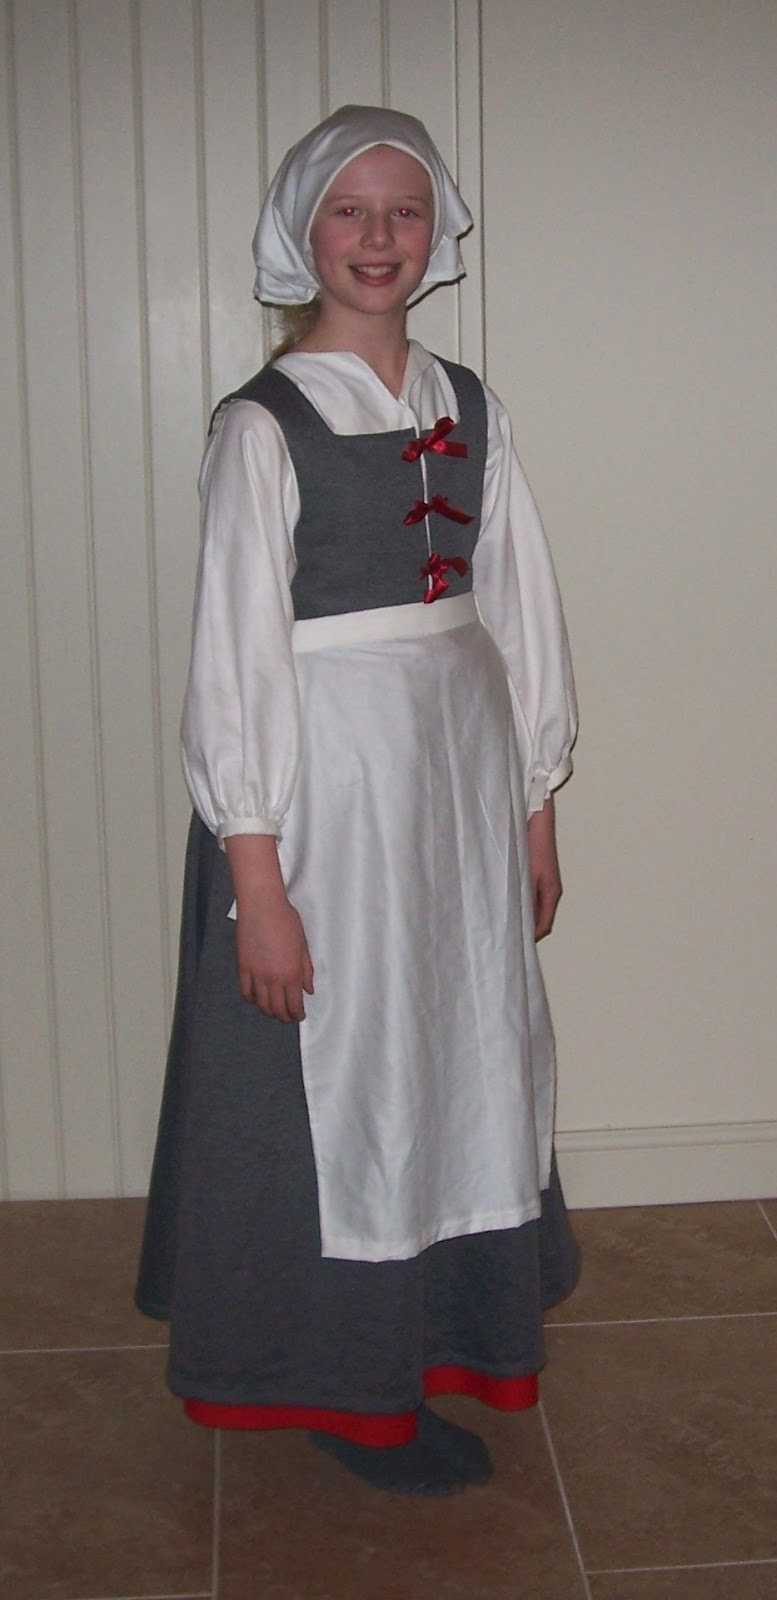 White tudor apron - Now Alice Is Ready For Work In The Tavern Her Apron Is Made Of Linen And Is Not Gathered At The Top As Is A Modern Apron But Is Perfectly Smooth